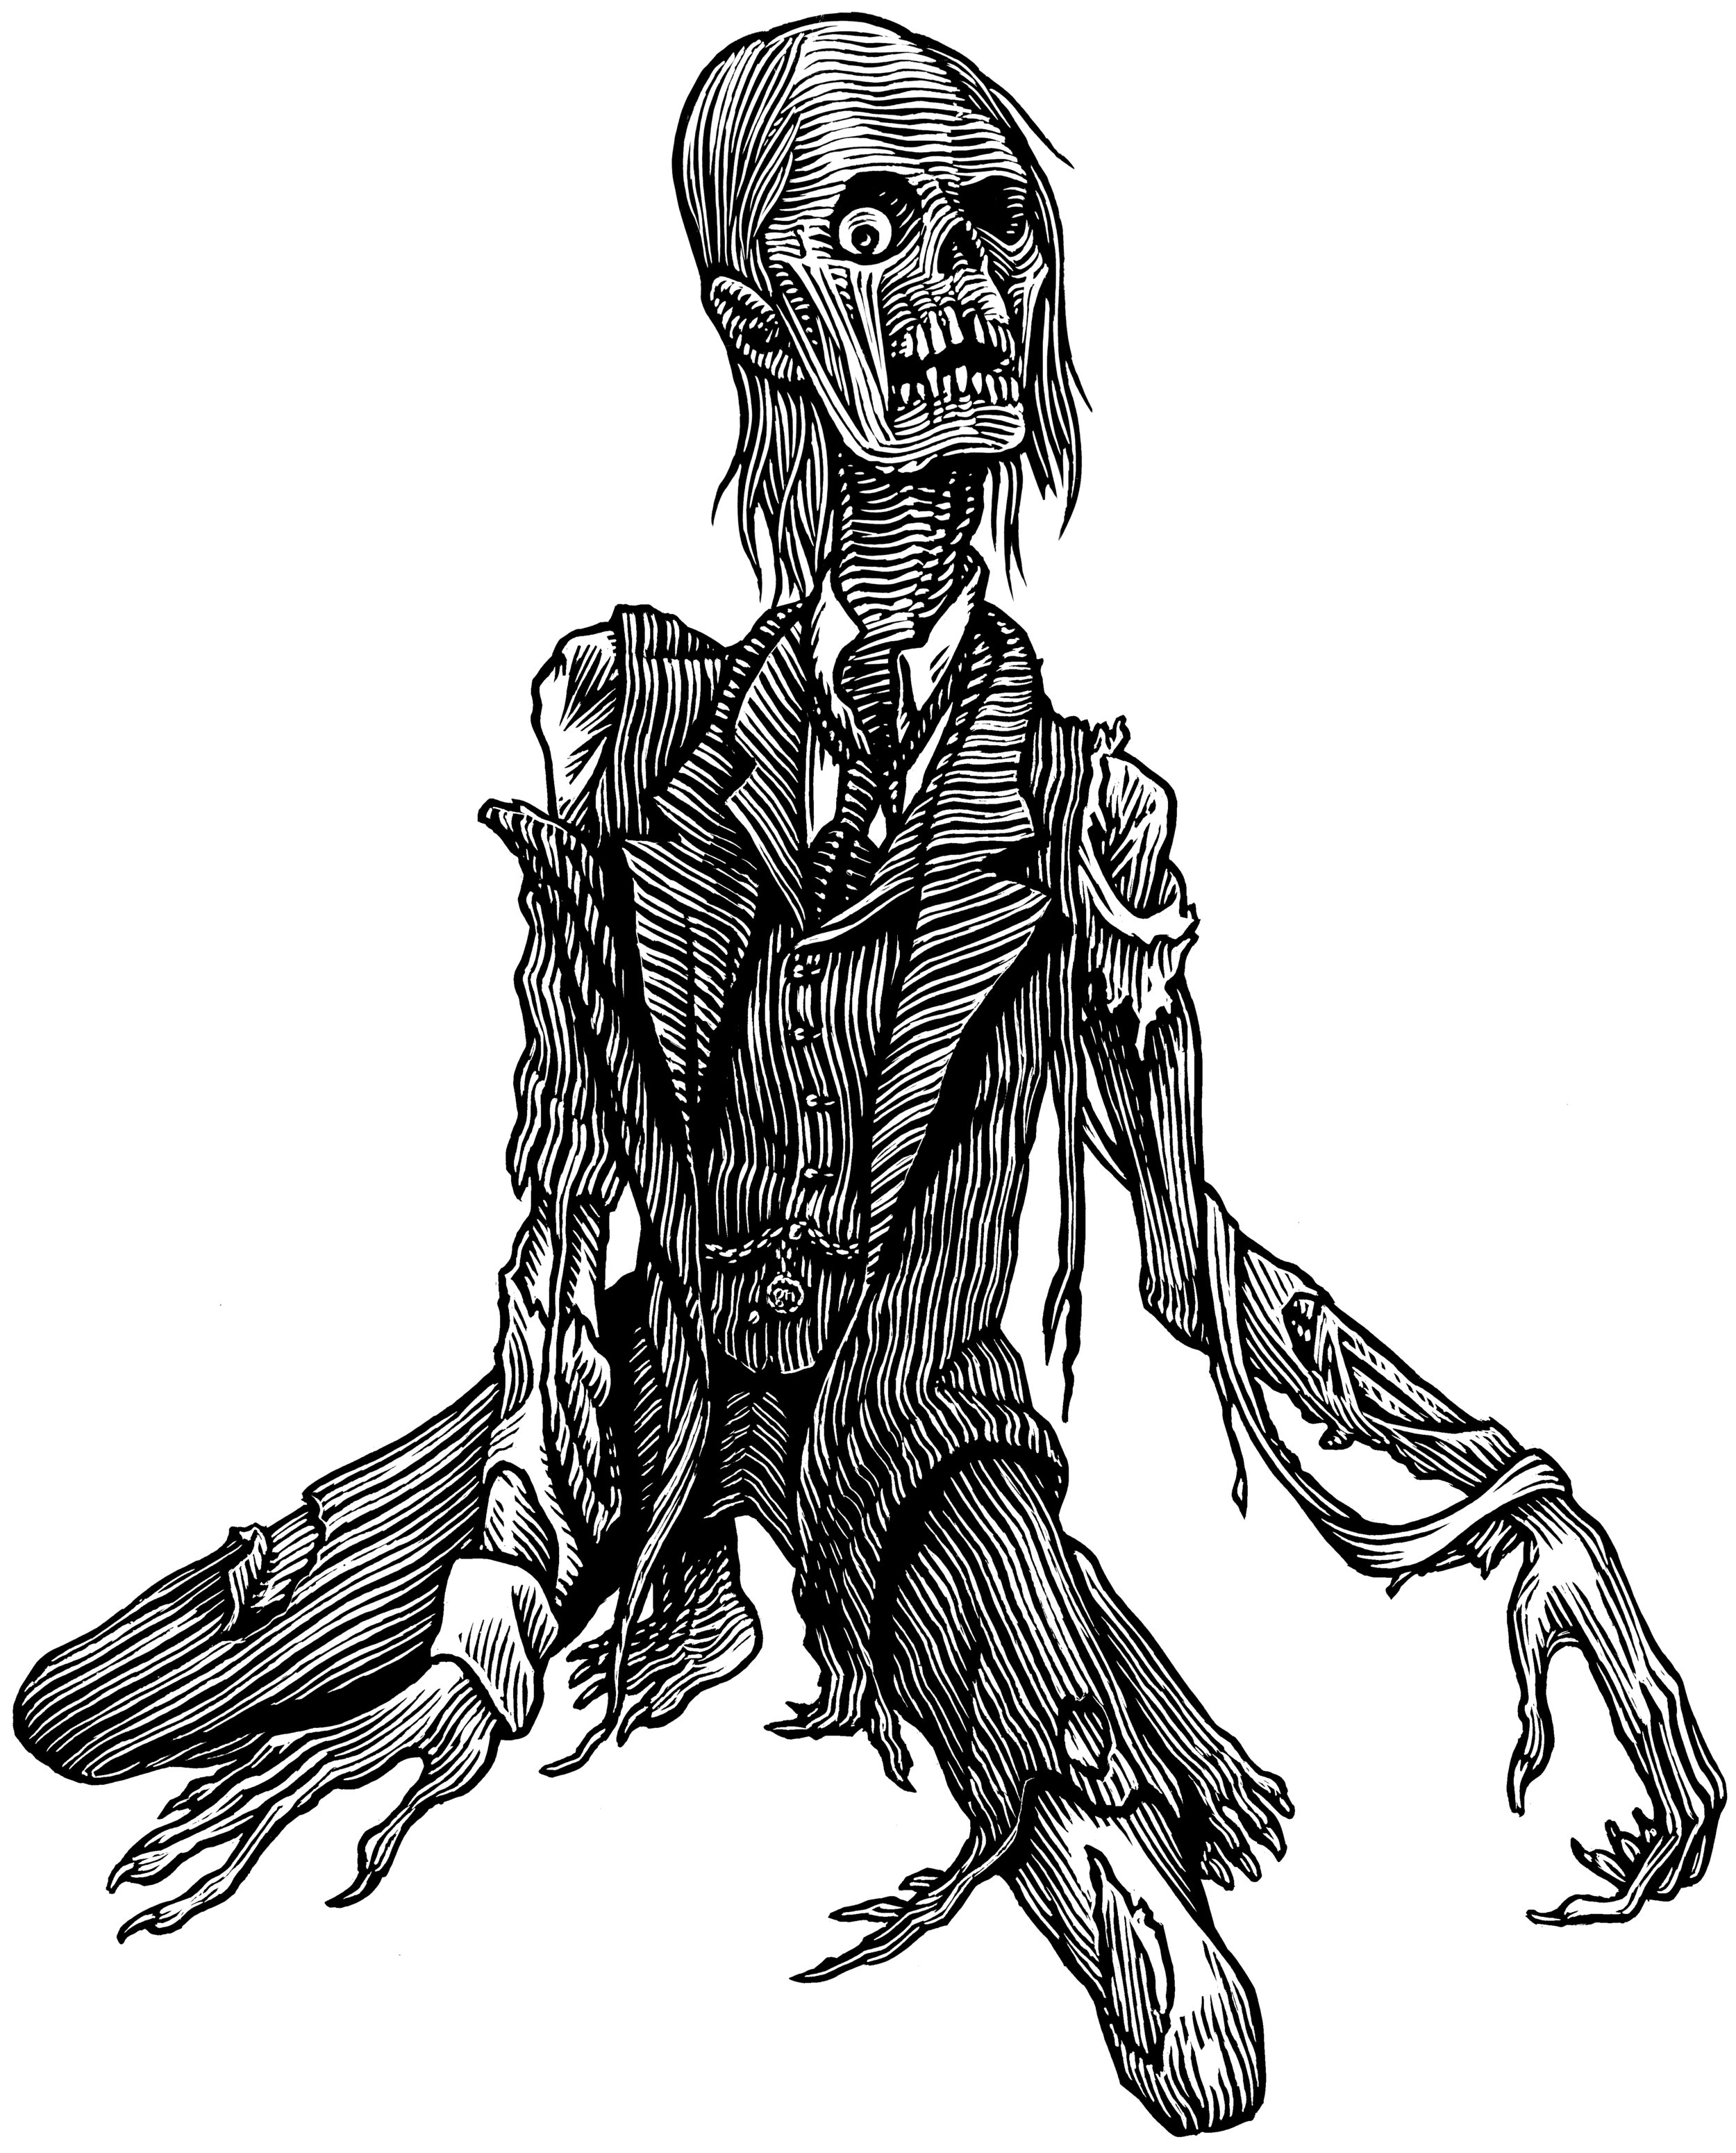 lovecraft zombie revised version flat.jpg